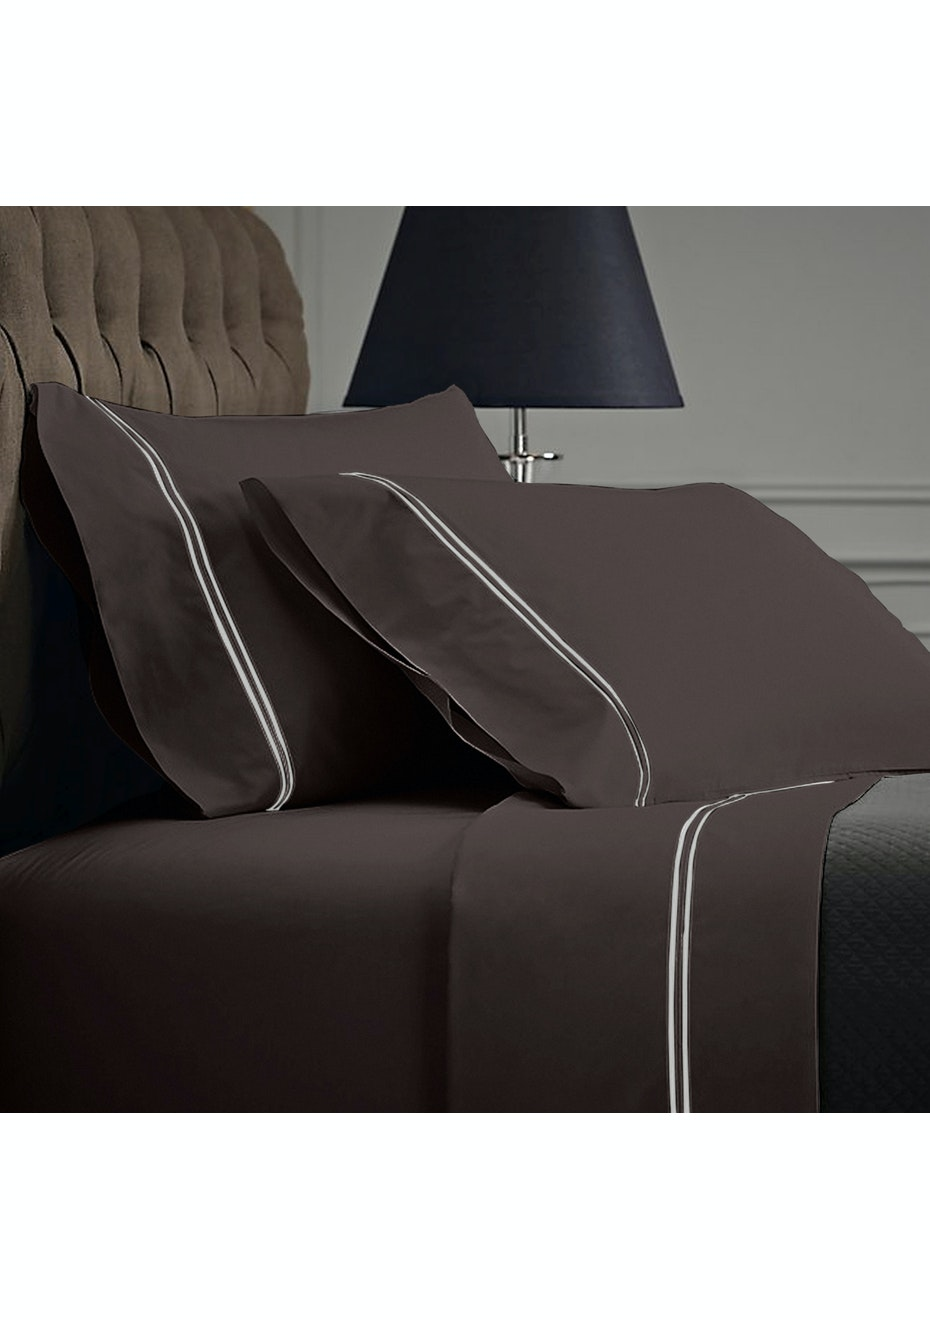 Style & Co 1000 Thread count Egyptian Cotton Hotel Collection Sorrento Sheet sets King Coal